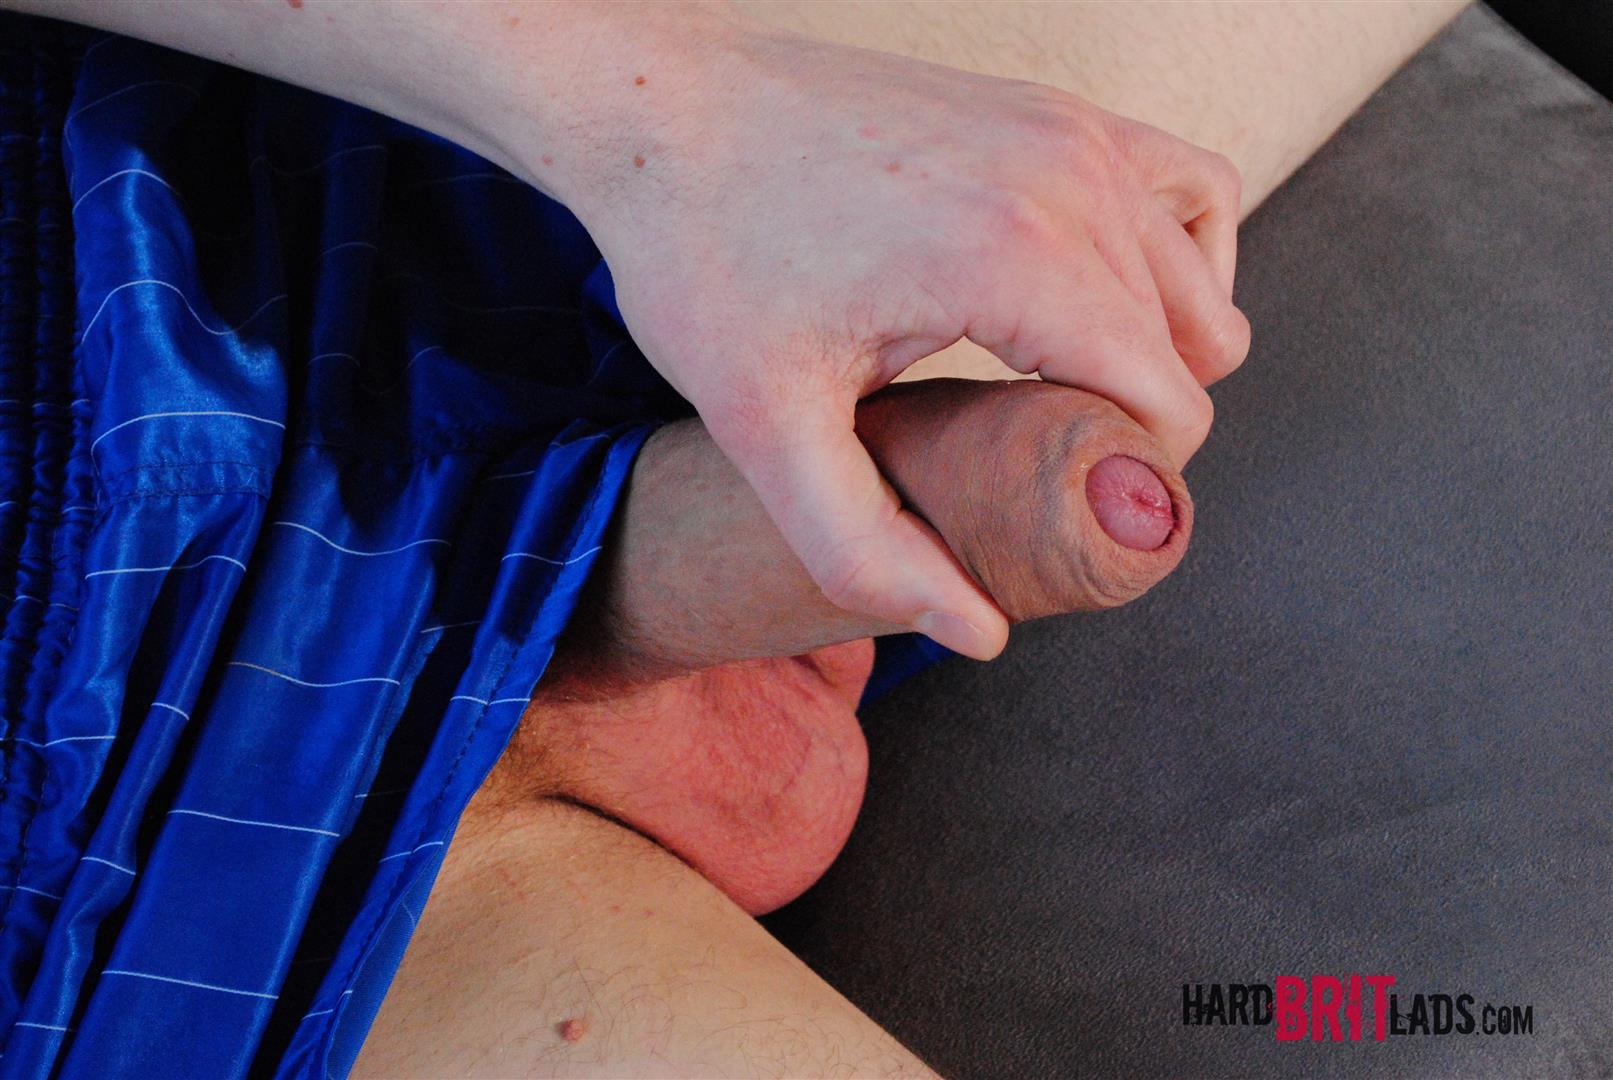 Hard Brit Lads Blake D Big Uncut Cock Masturbation Amateur Gay Porn 07 British Jock Playing With His Massive Uncut Cock Squirts A Load